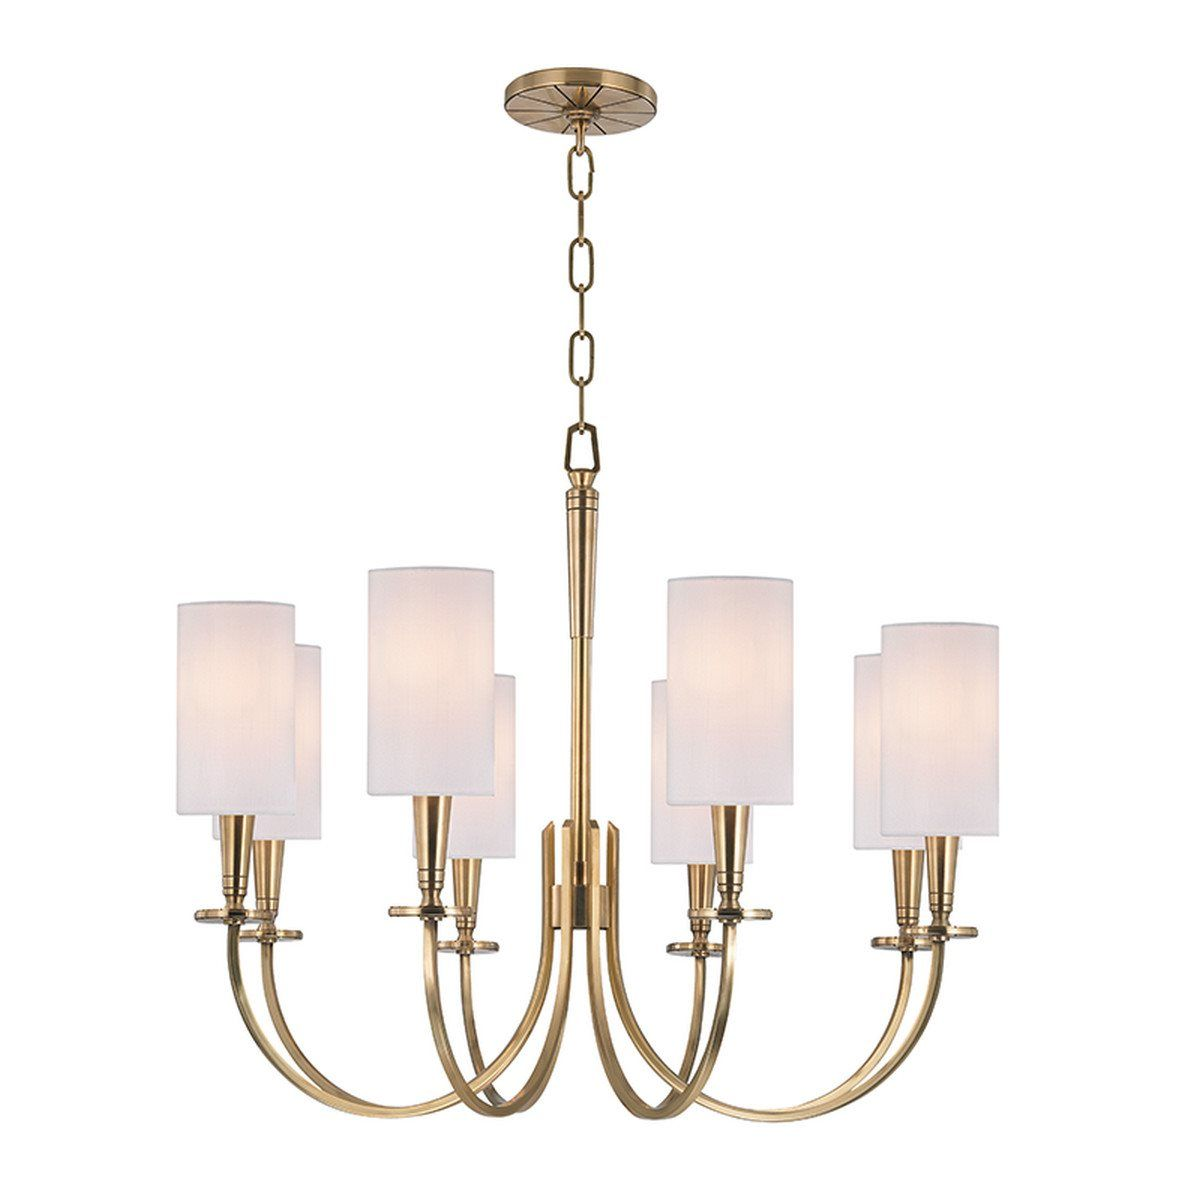 South Shore Decorating: Hudson Valley Lighting 8028-AGB Mason Transitional Chandelier HV-8028-AGB